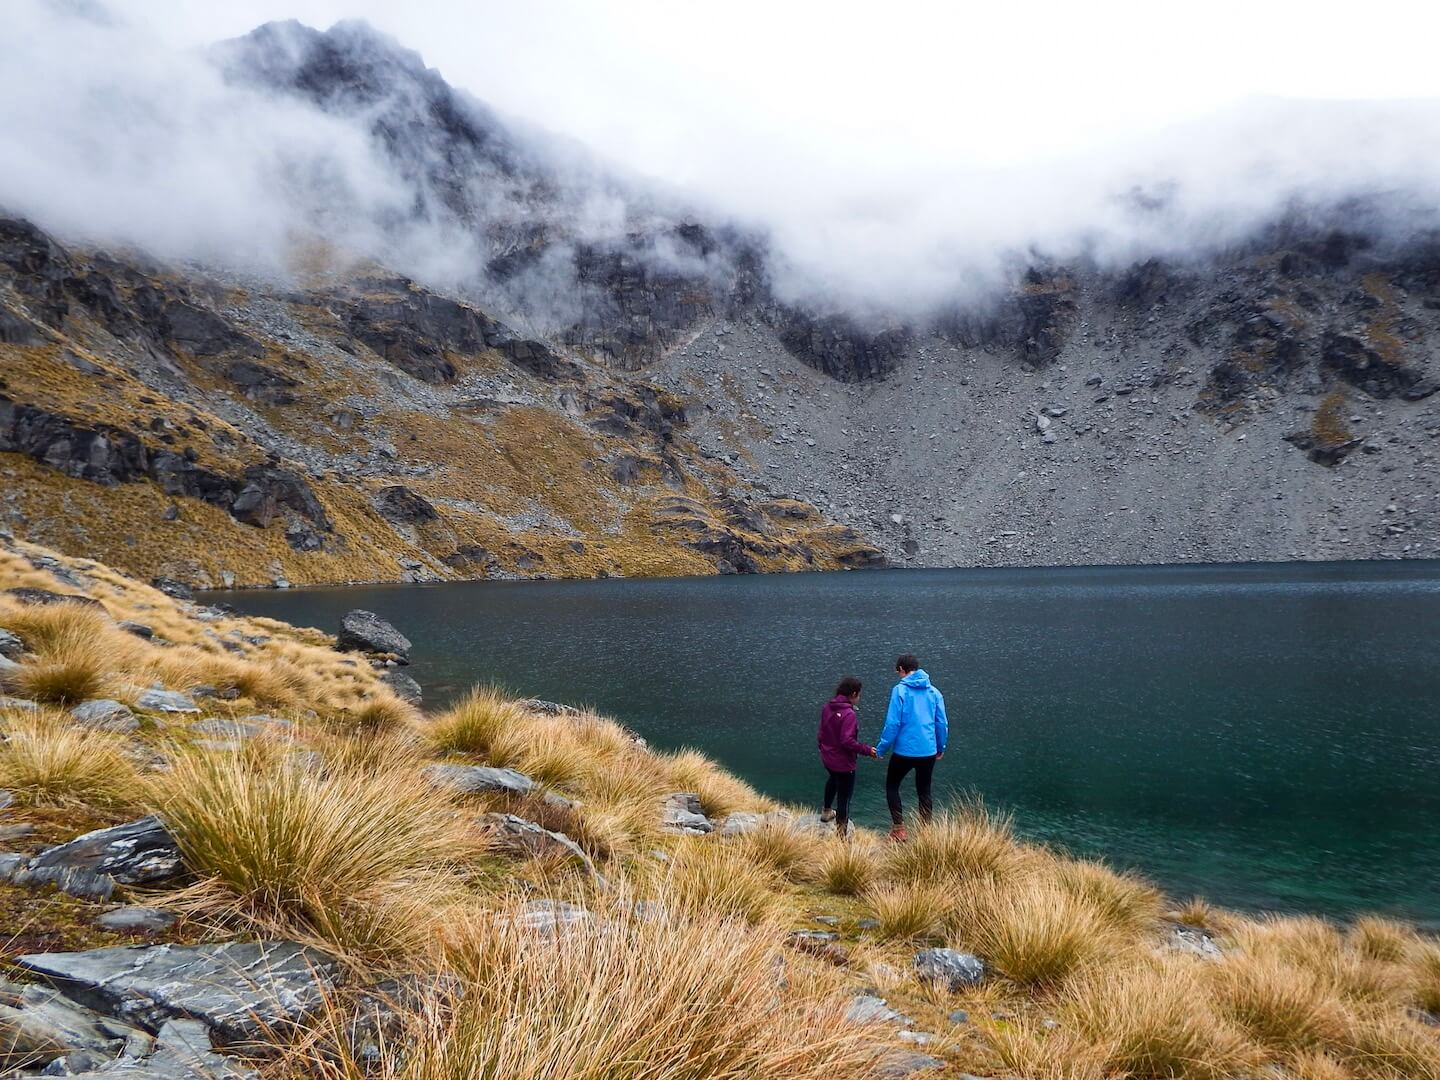 Lake Alta, the Remarkables, New Zealand